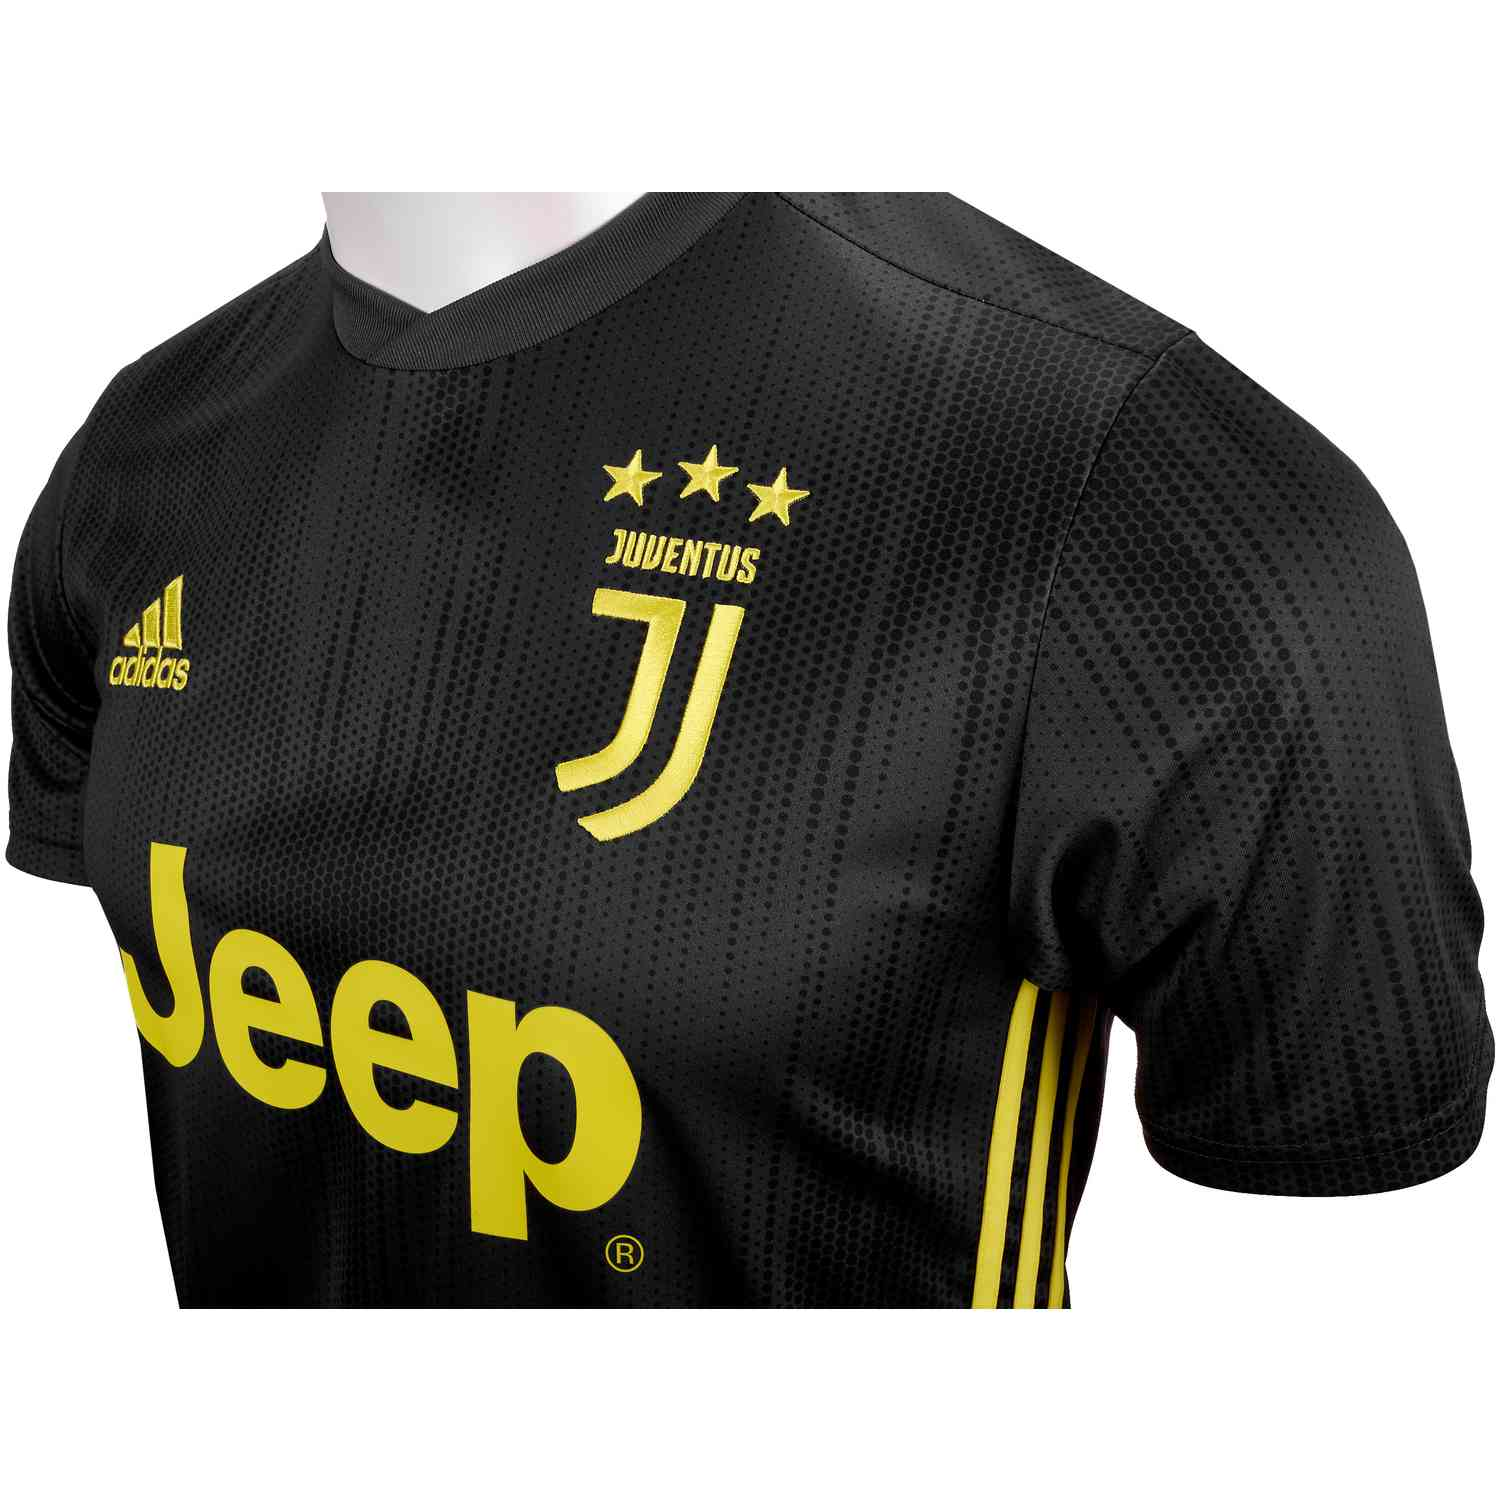 buy online d11d2 42bcc 2018/19 Kids adidas Cristiano Ronaldo Juventus 3rd Jersey ...